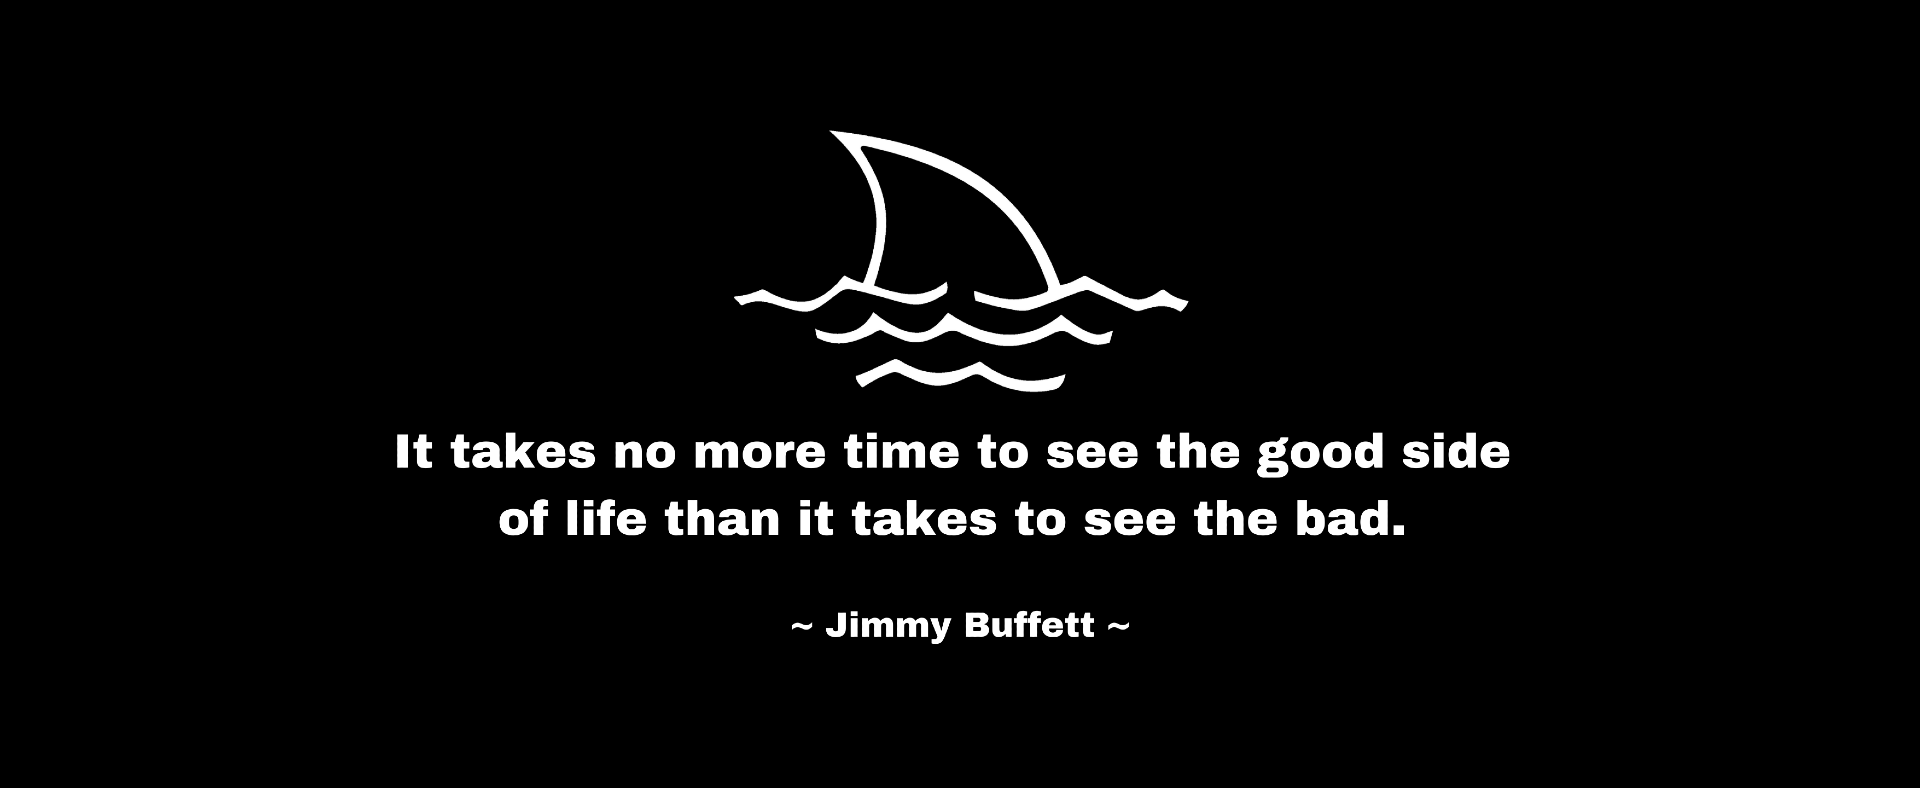 It takes no more time to see the good side of life than it takes to see the bad. -Jimmy Buffett